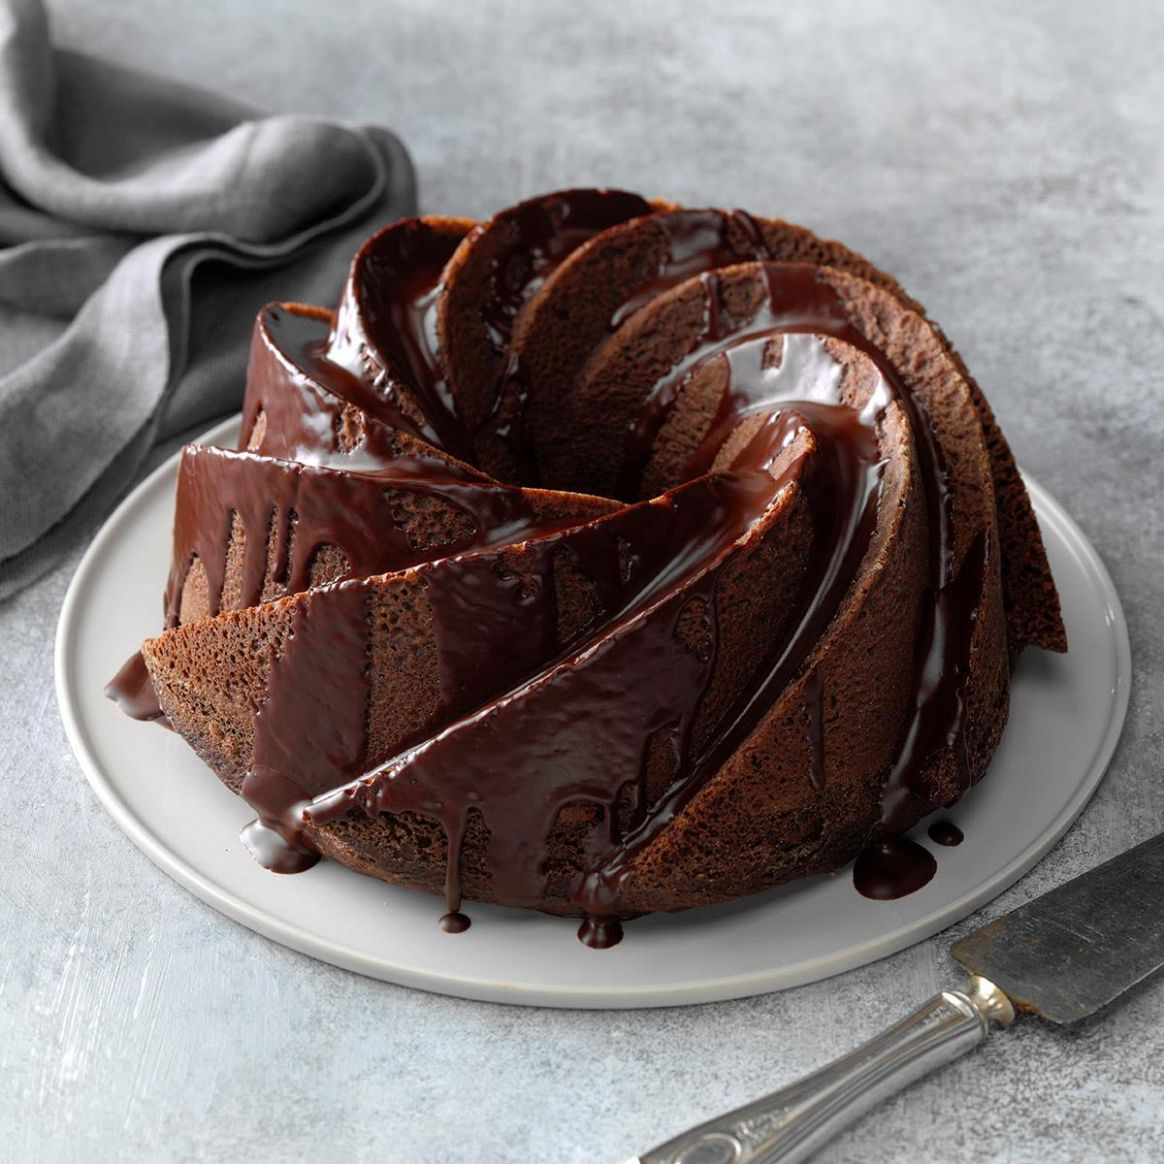 12 Recipes to Make with Baking Chocolate | Taste of Home - Recipes Cooking Chocolate